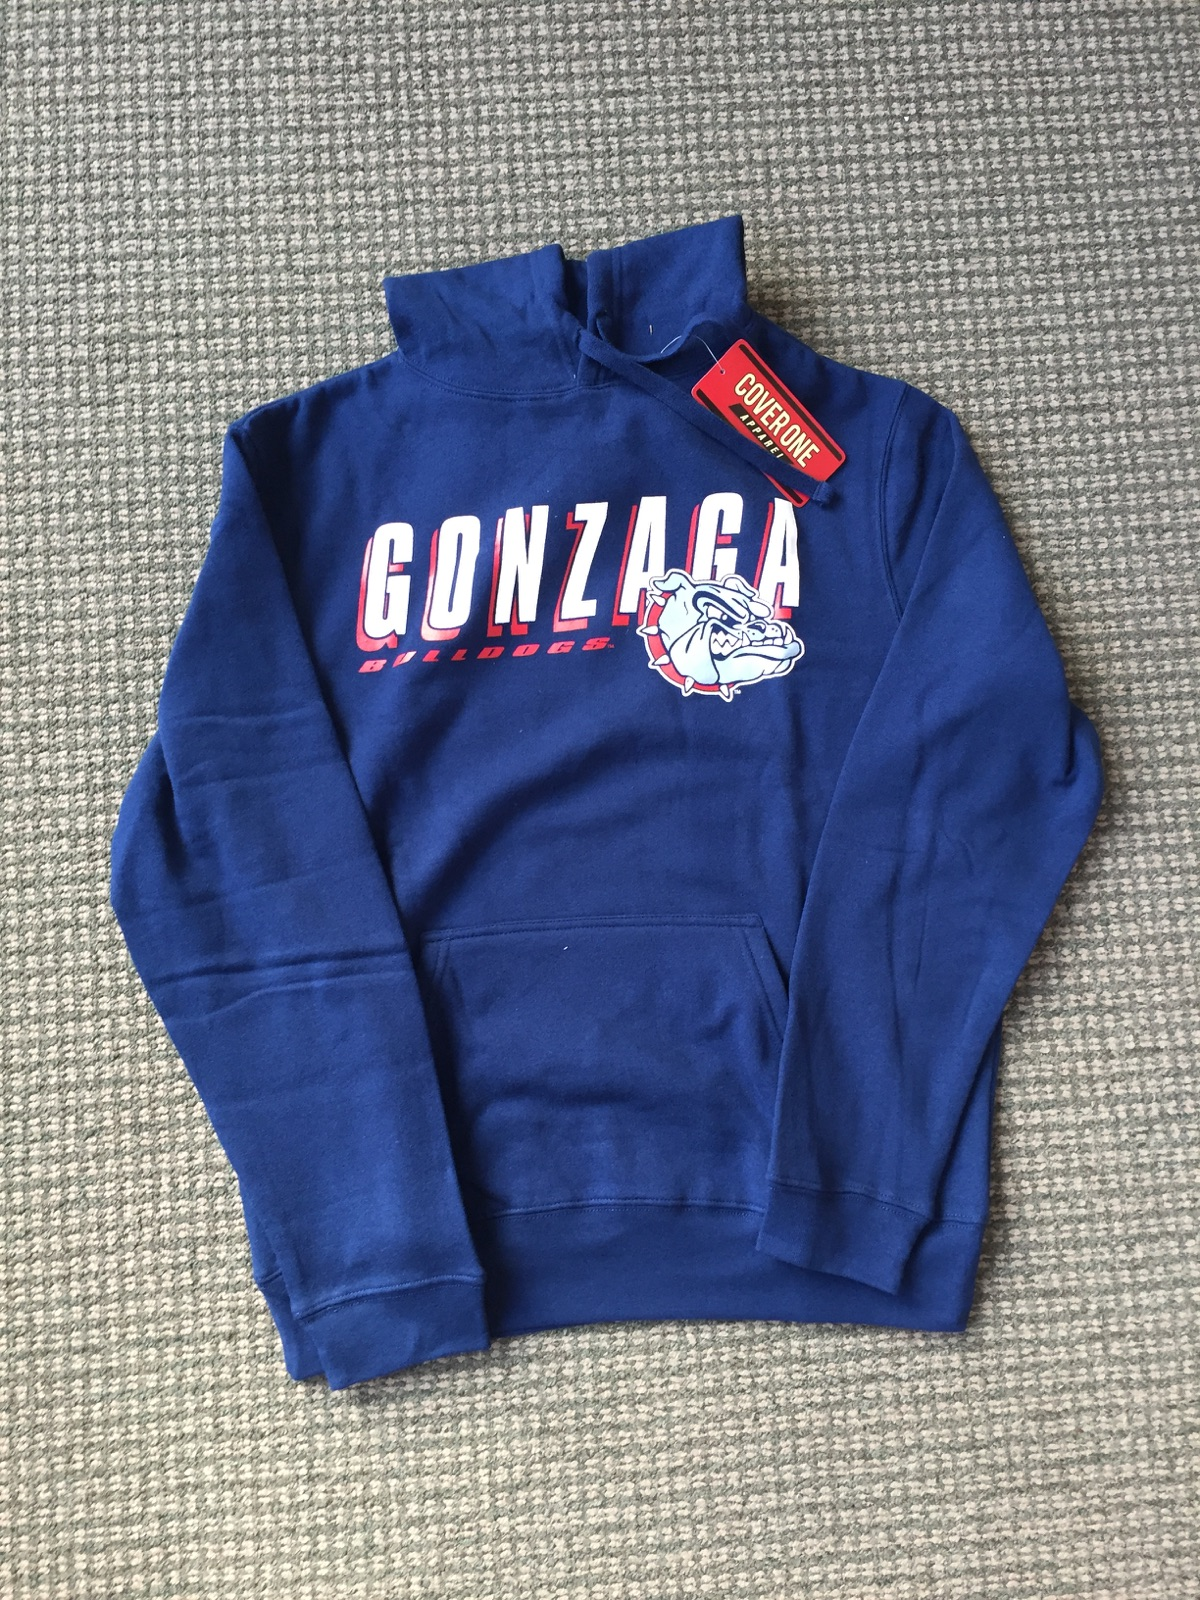 Gonzaga Hooded Sweatshirt Size Medium